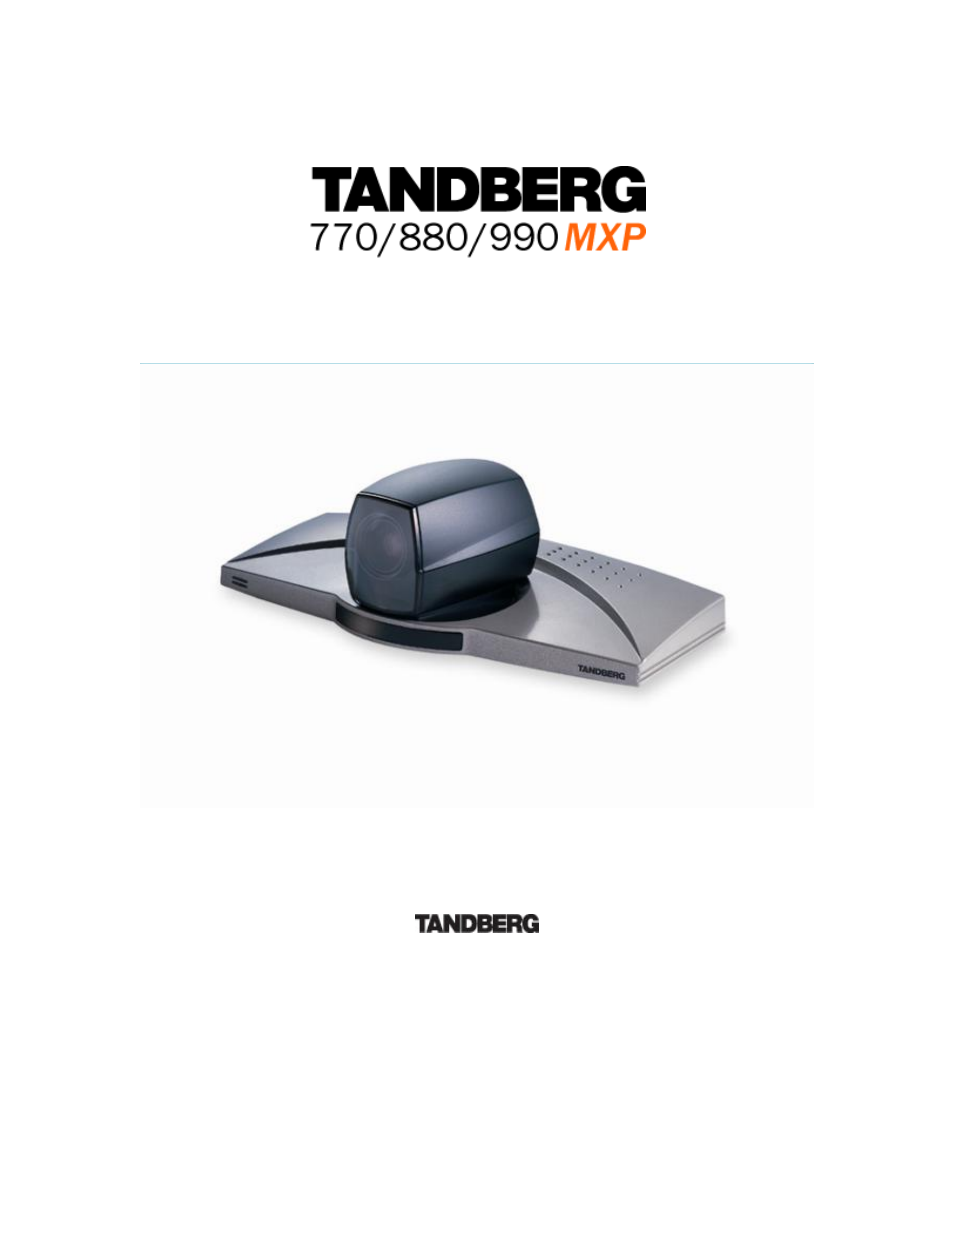 tandberg 880 mxp user manual 317 pages also for 770 mxp 990 mxp rh manualsdir com Tandberg 880 MXP Manual Tandberg Ttc8-04